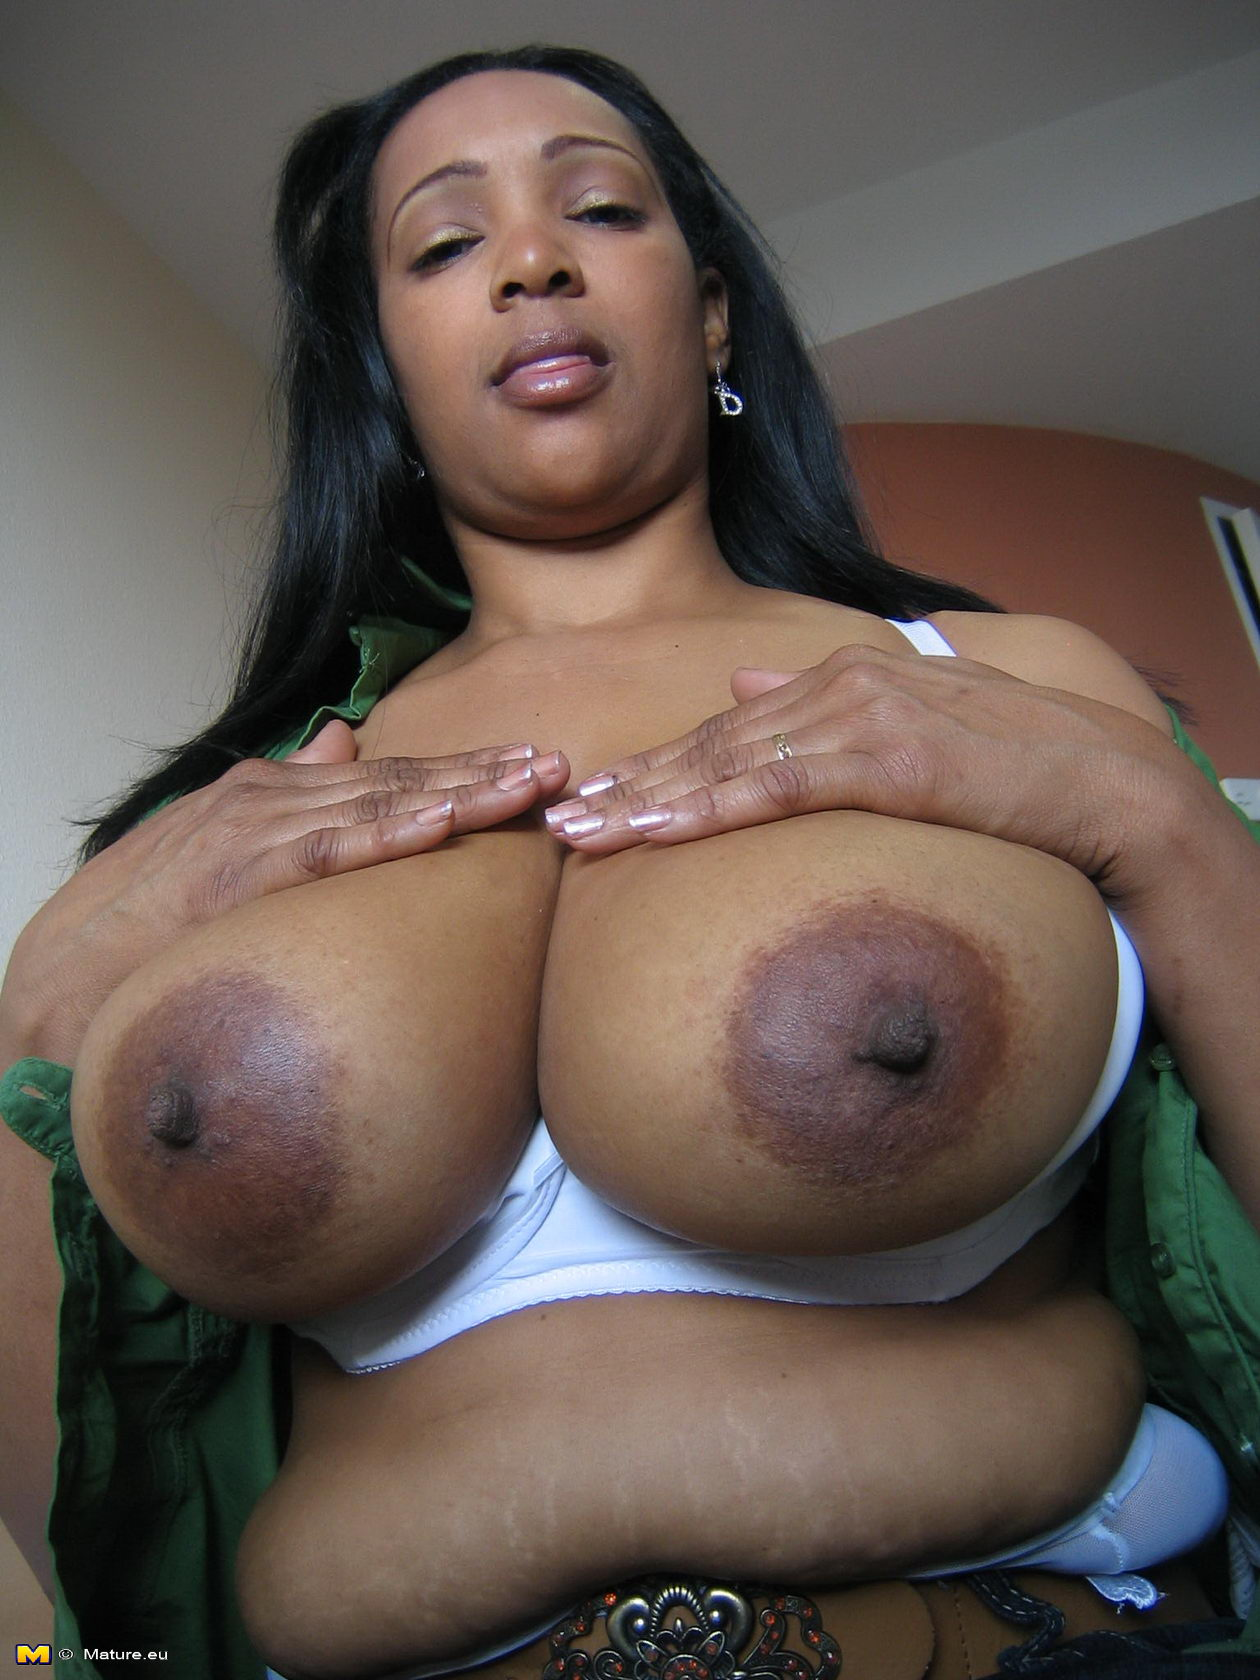 Huge tits bbw mexican phat ass pov doggystyle 7